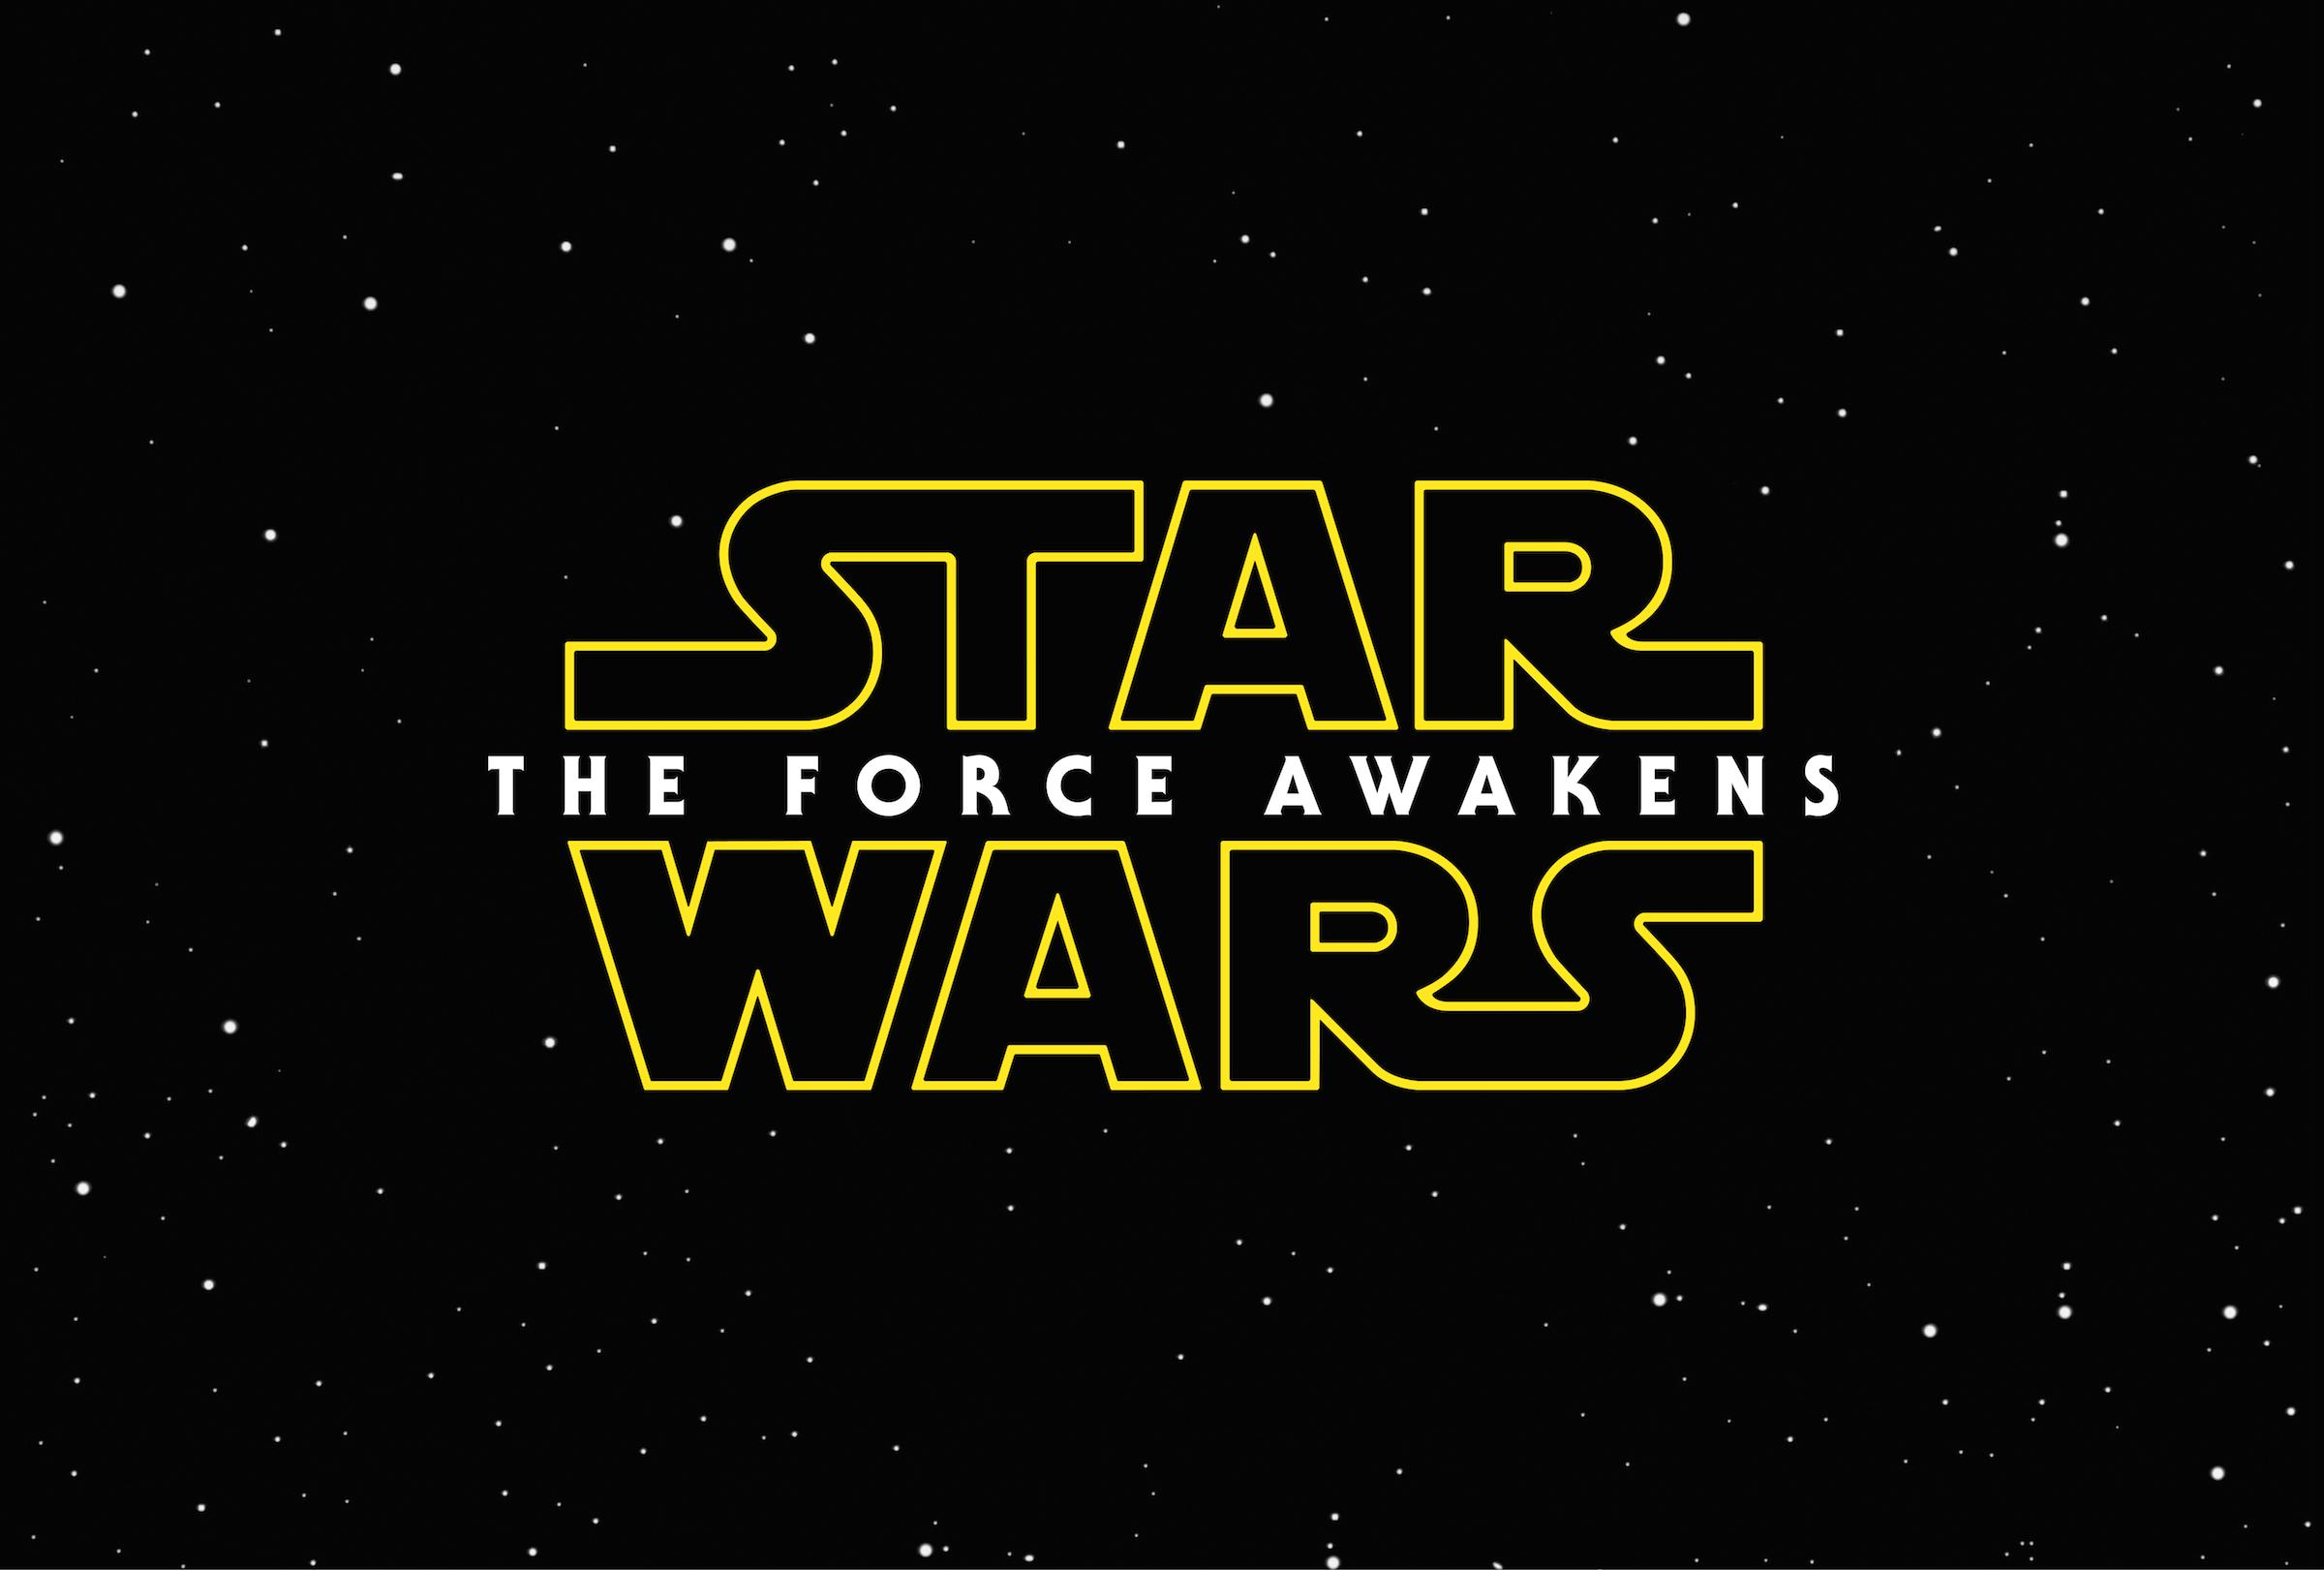 Star Wars - The Force Awakens (les personnages)